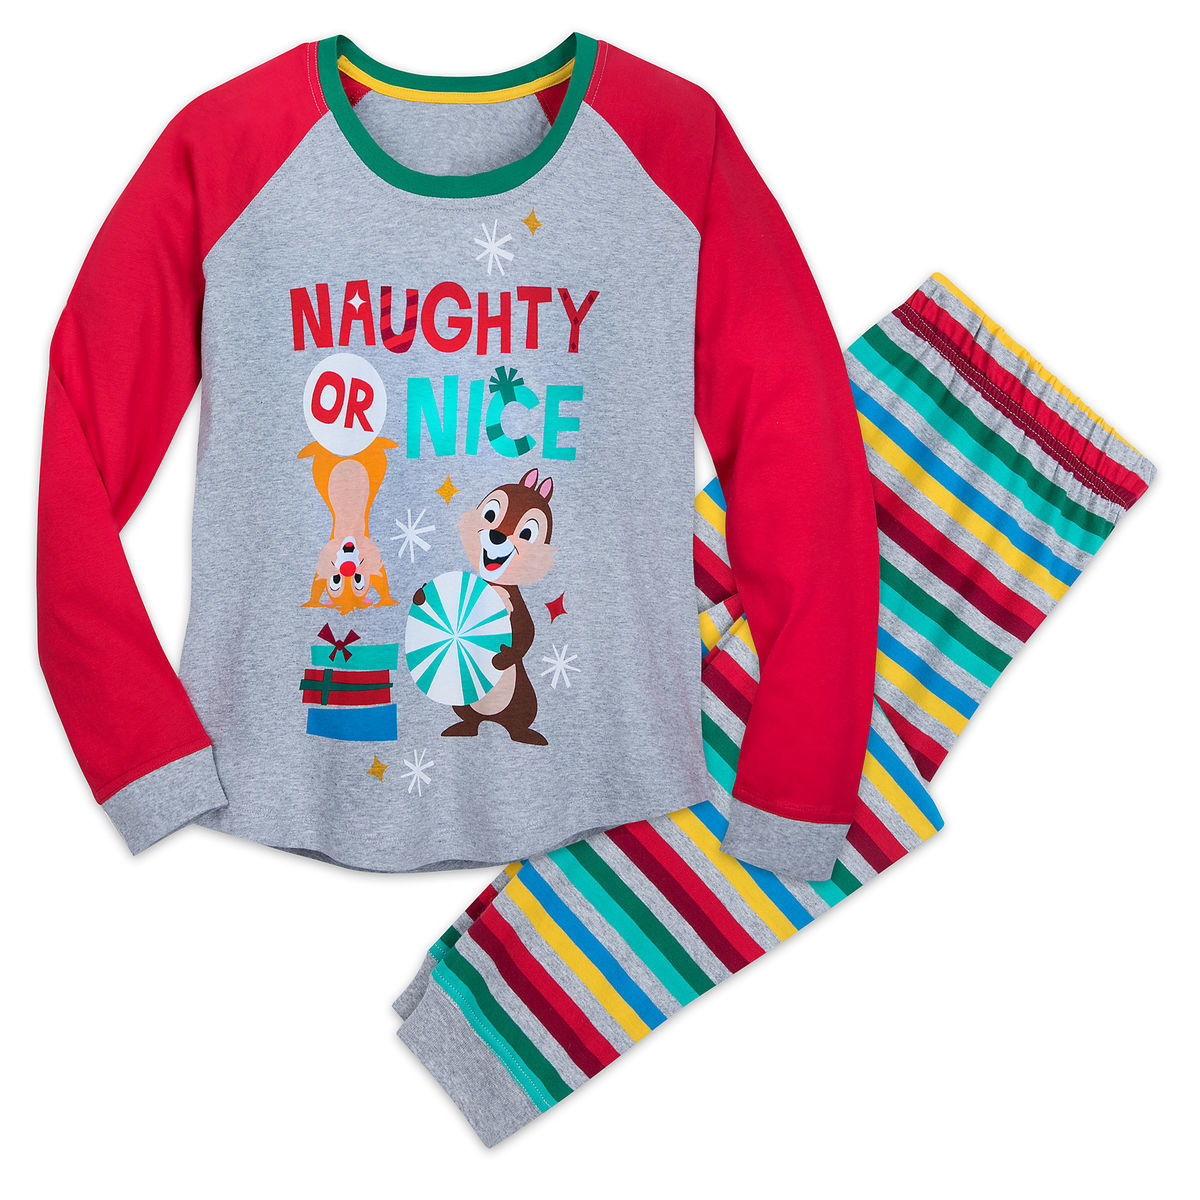 c9a837452ff6 Chip  n Dale Holiday PJ Set for Women